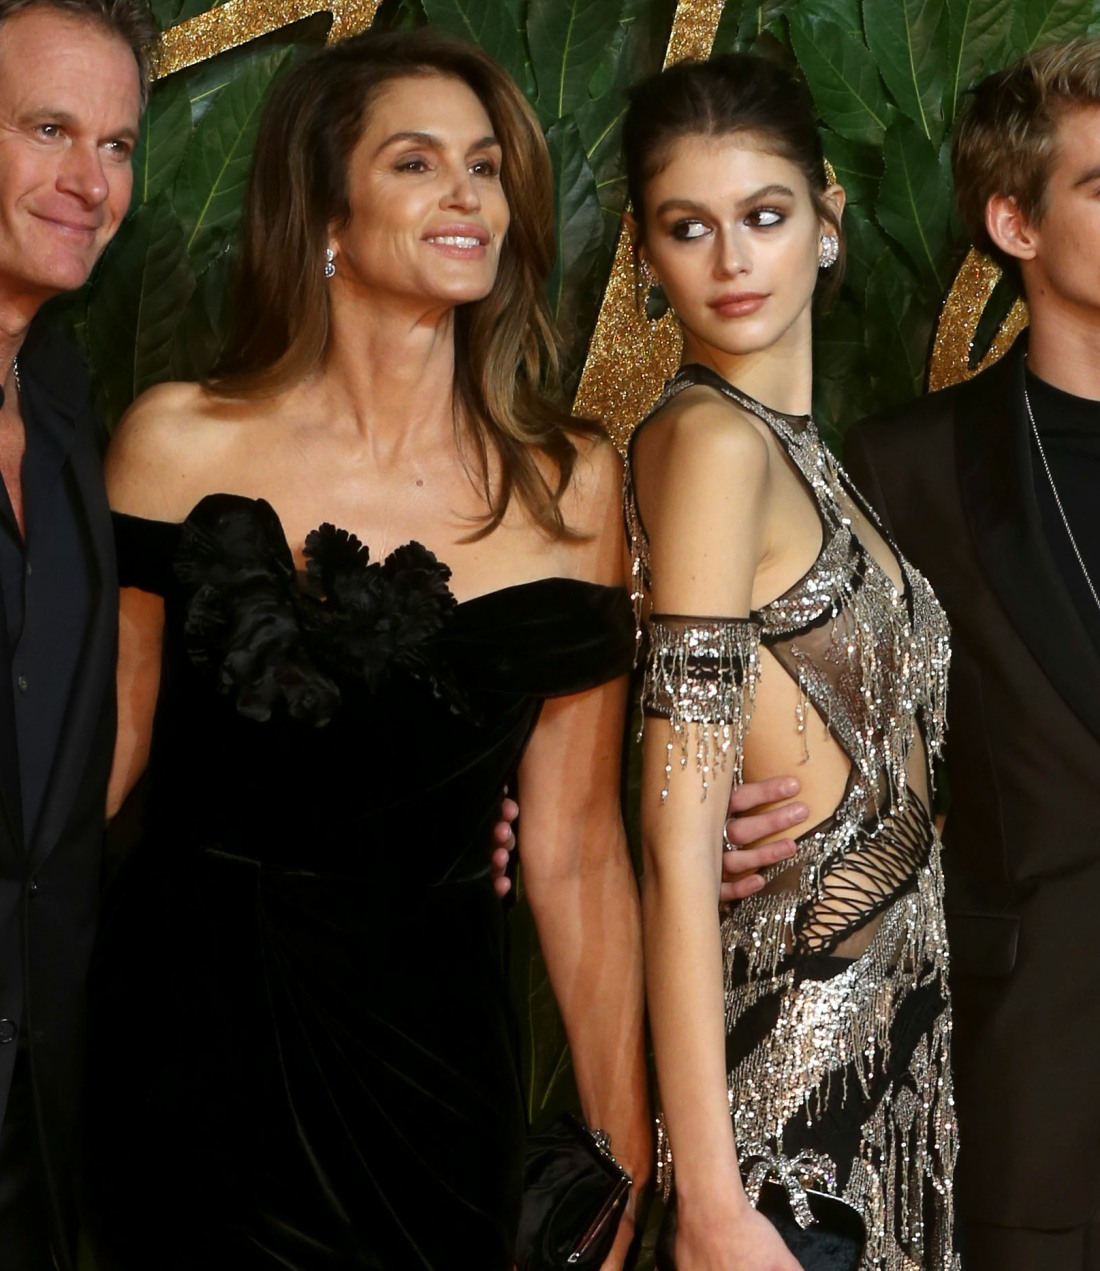 Rande Gerber , Cindy Crawford and Kaia Gerber attends the British Fashion Awards at the Royal Albert Hall,  on Monday 10th December, London, UK. James Shaw/Retna.